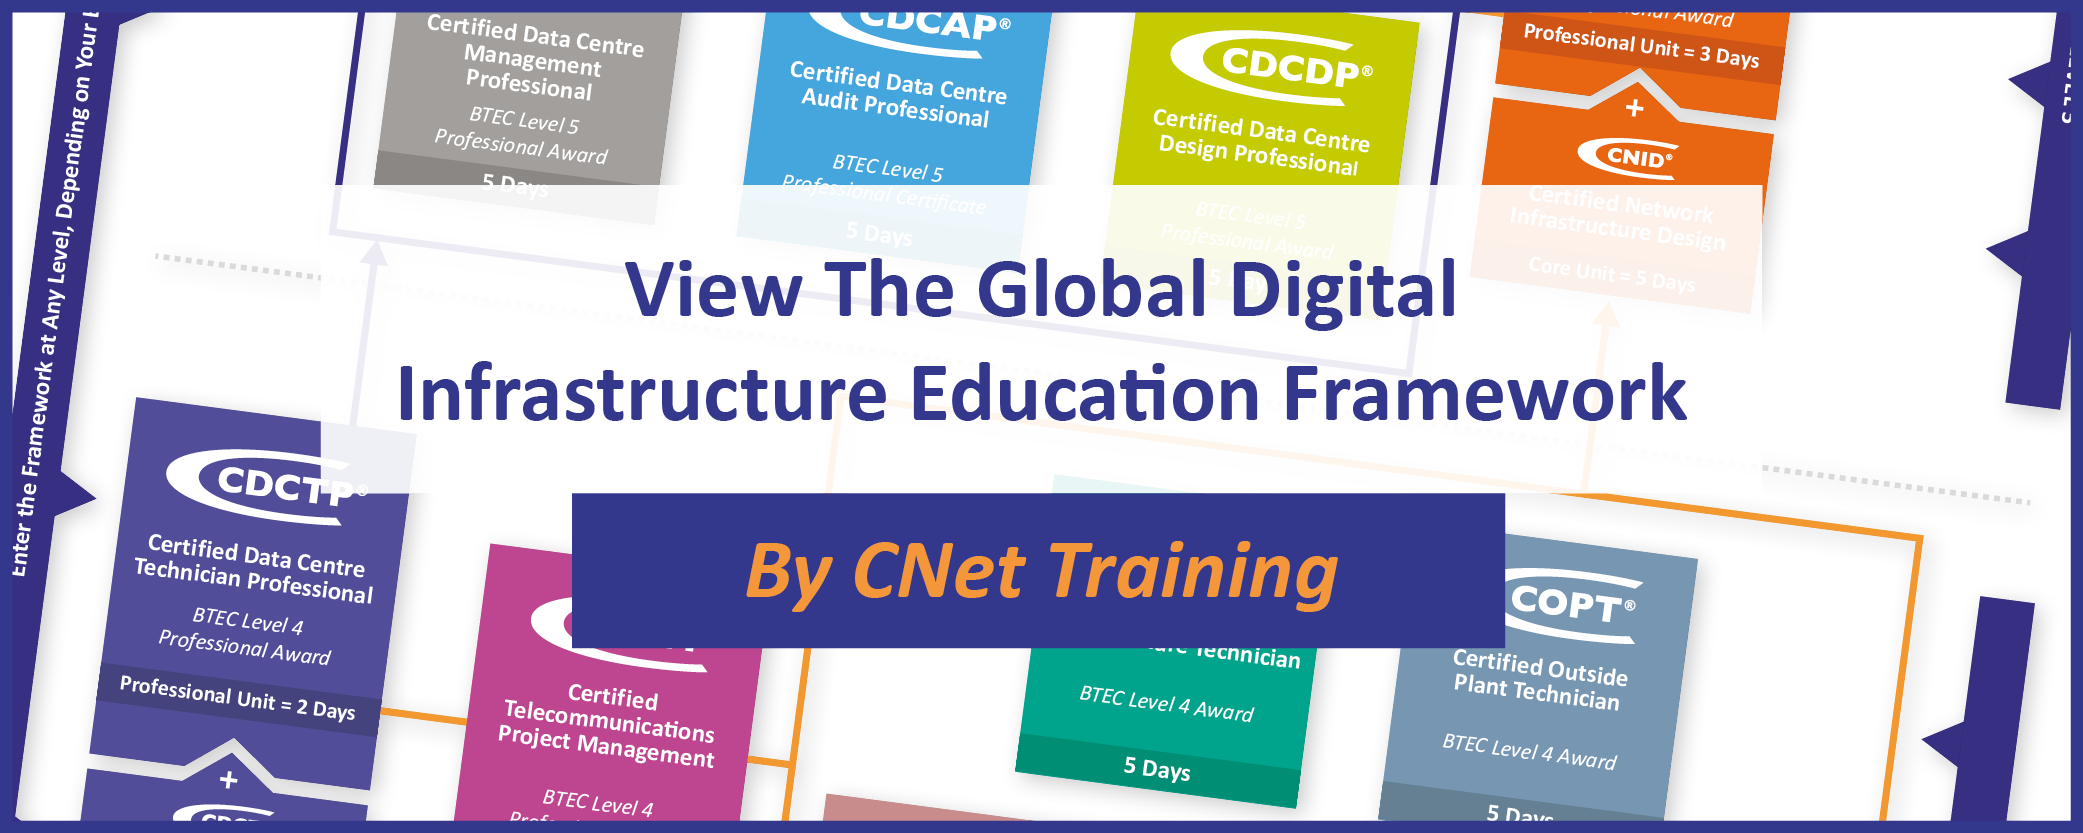 Cnet Training Data Centre Network Infrastructure Training